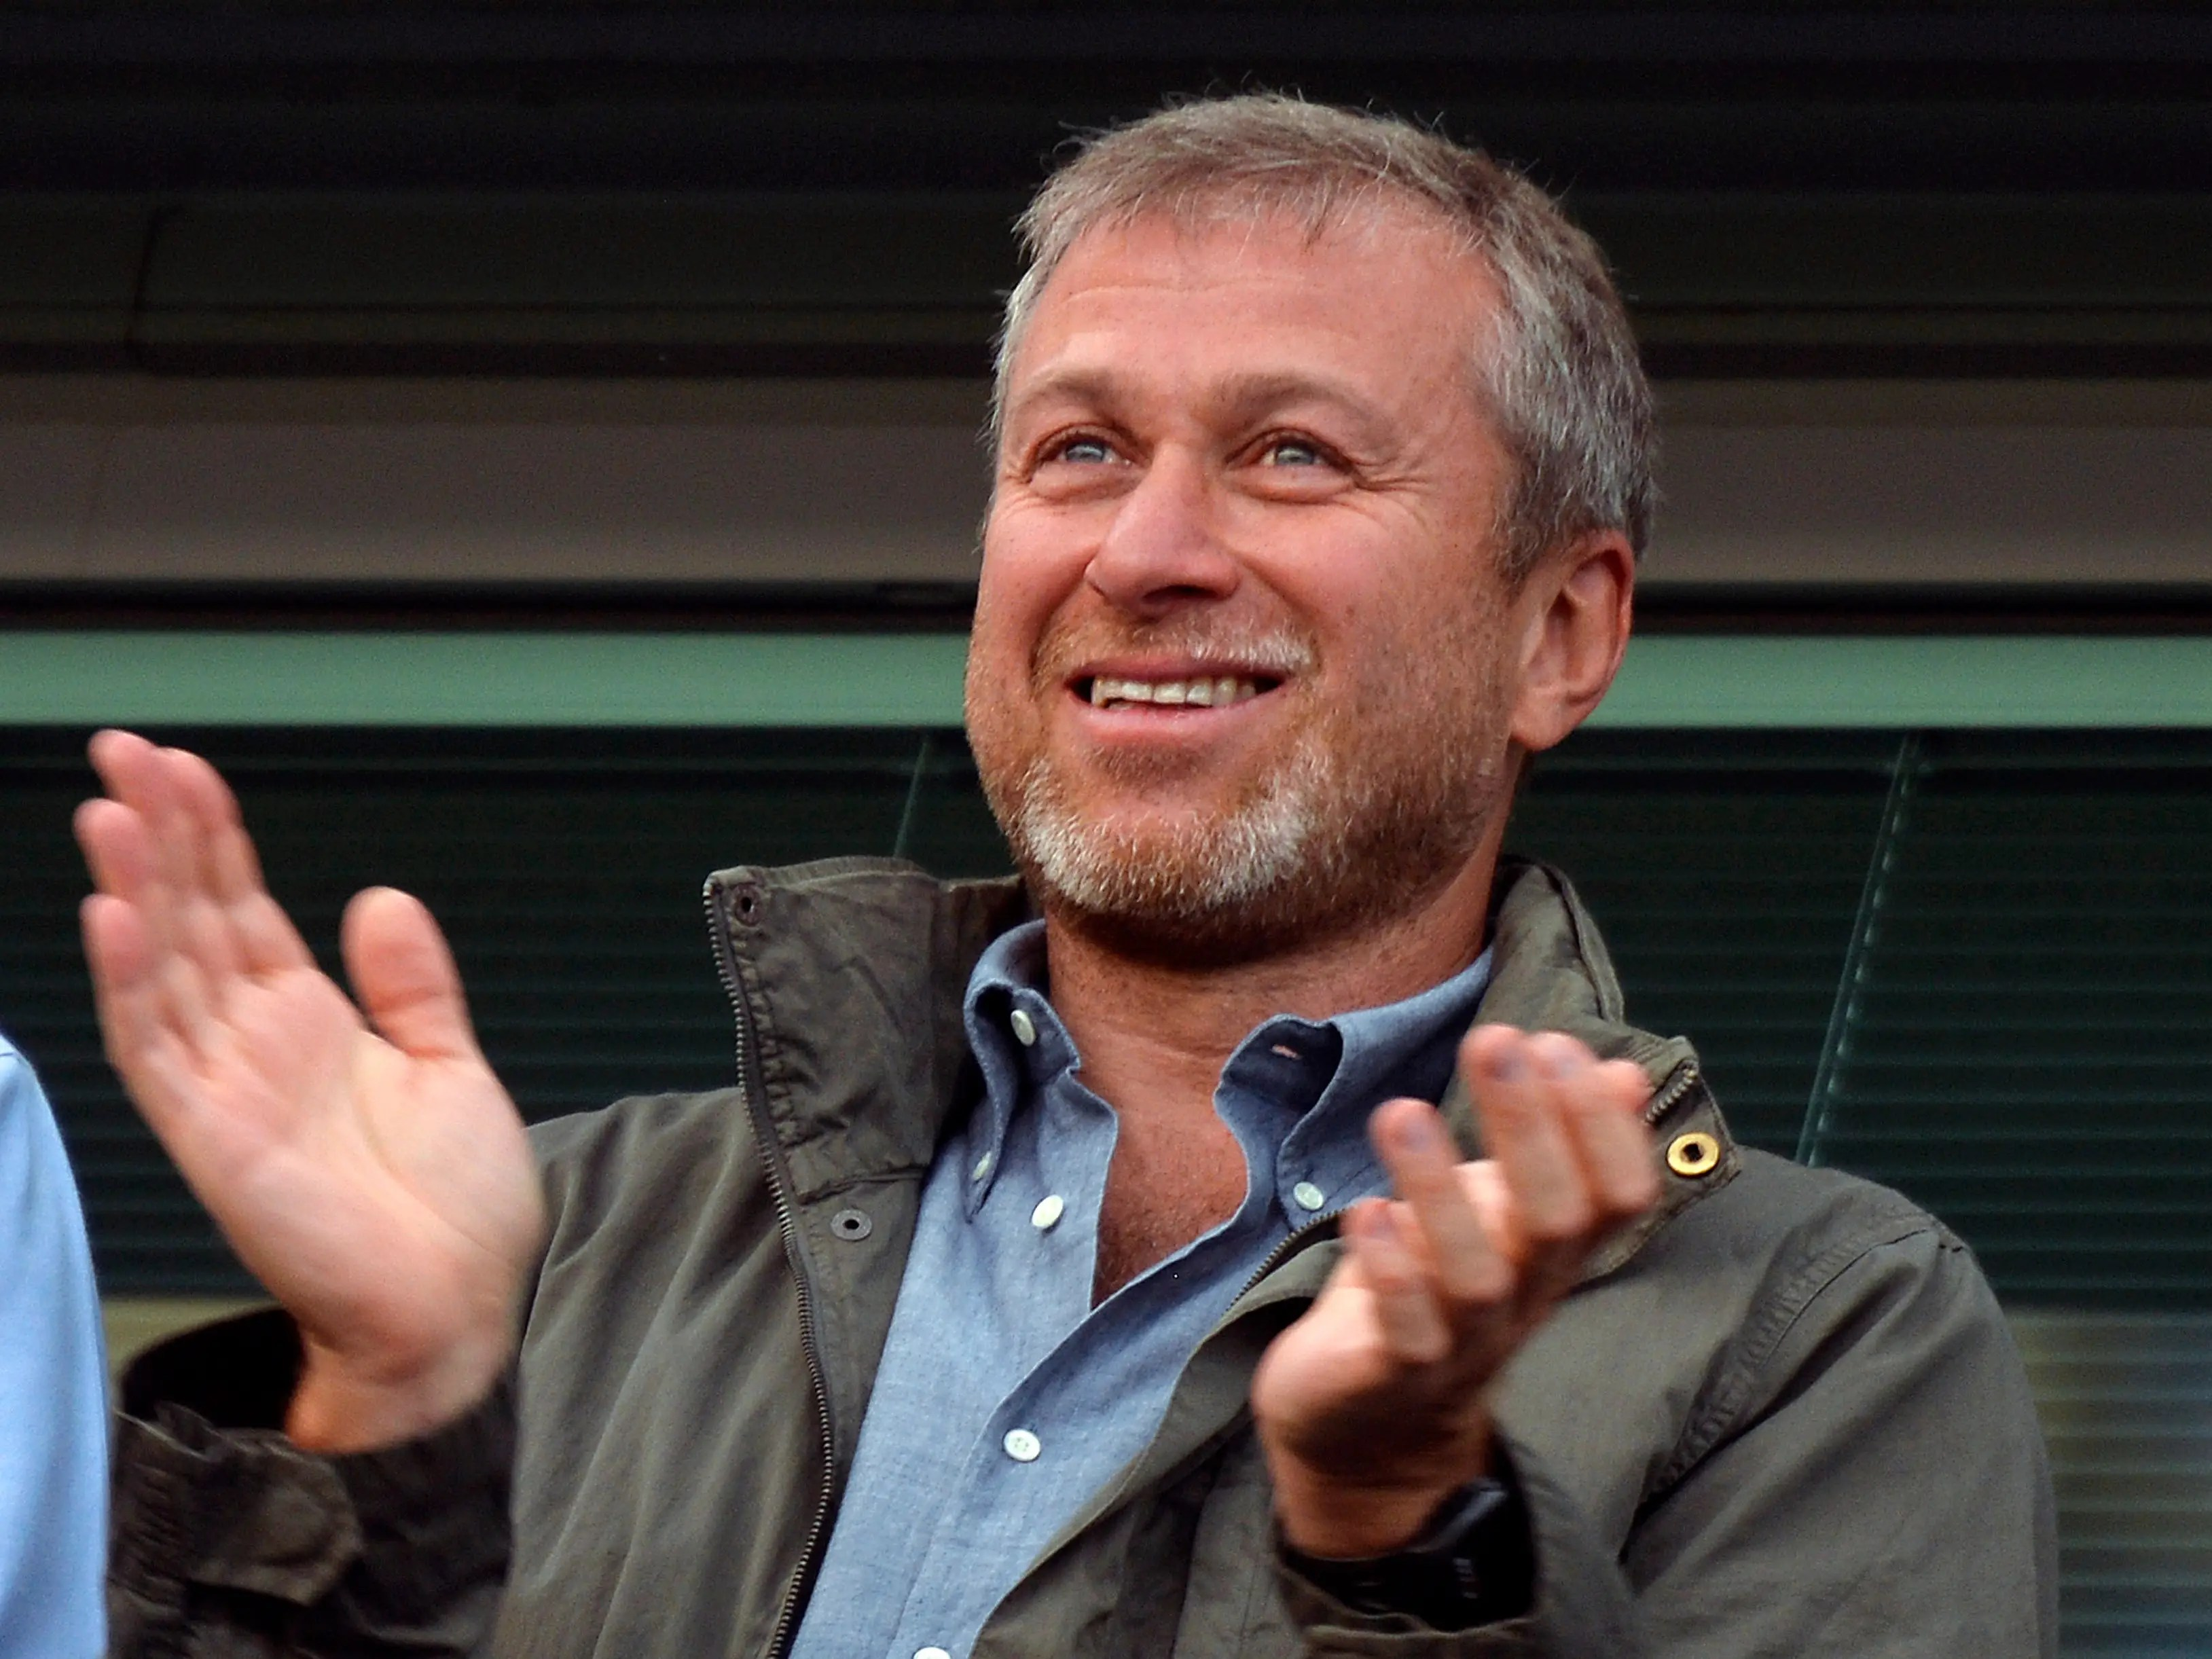 Roman Abramovich was an orphan who turned an expensive wedding gift into an oil empire.